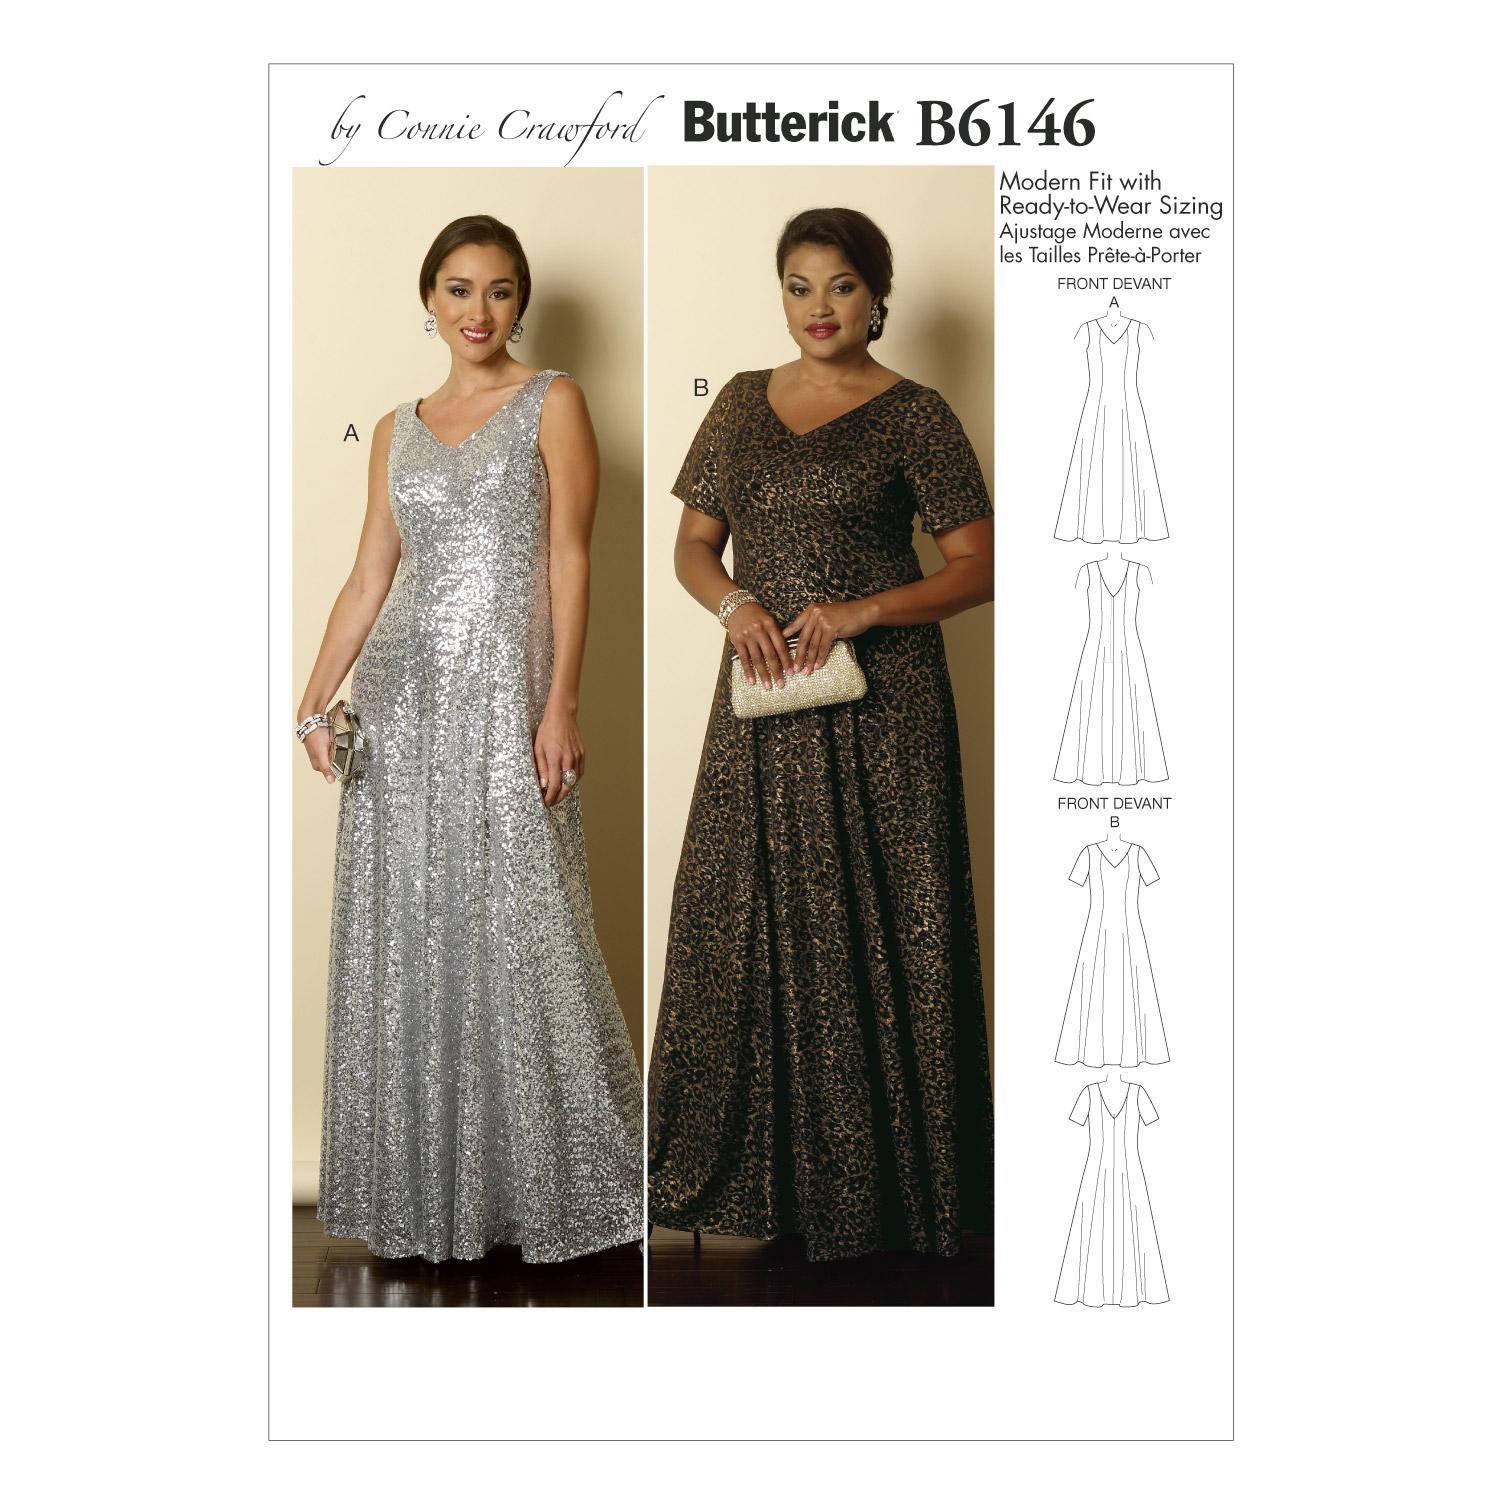 Butterick B6146 Misses'/Women's Dress